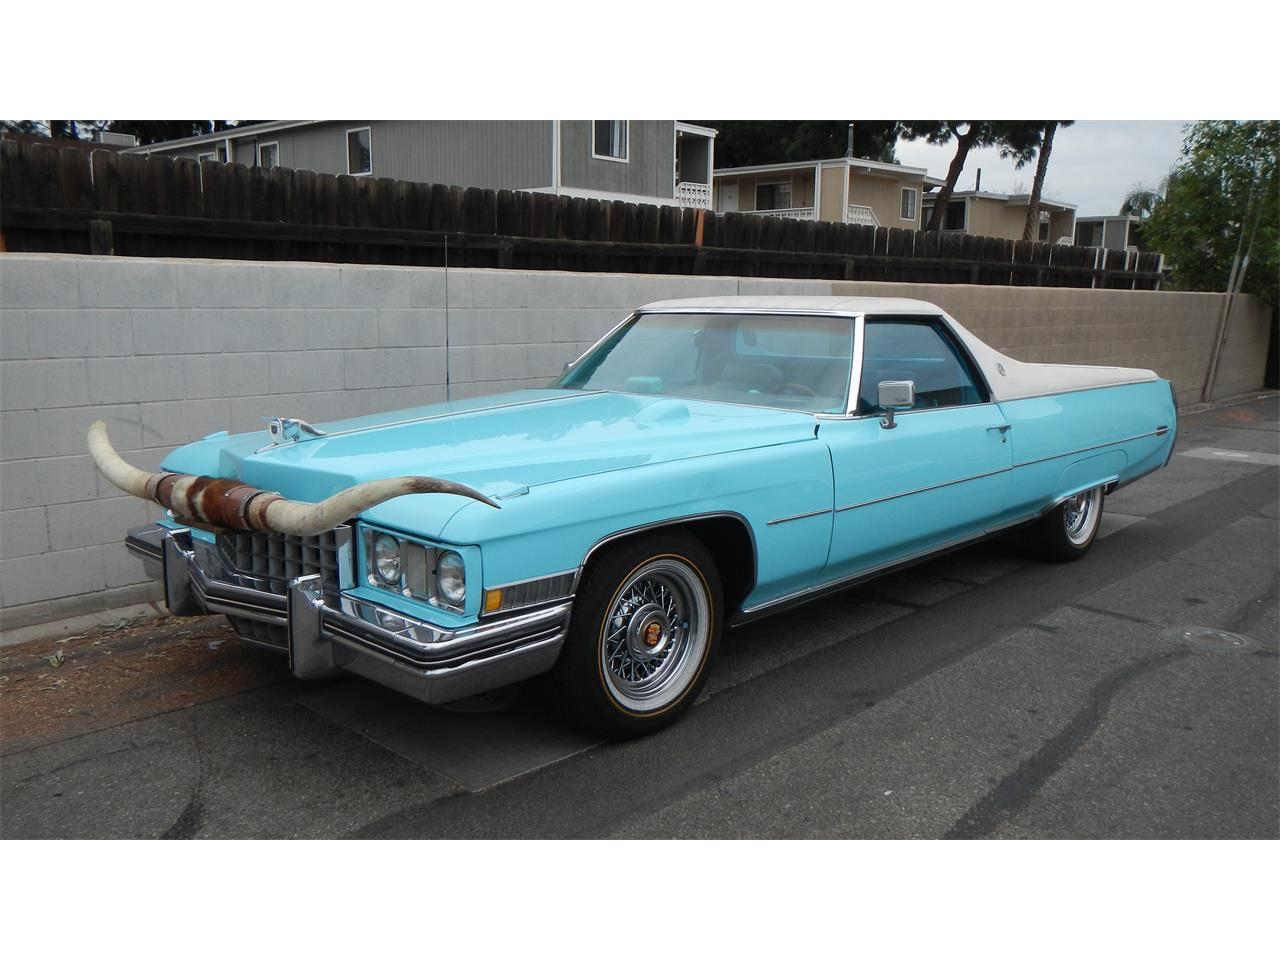 1973 Cadillac Eldorado for sale in Woodland Hills, CA – photo 2